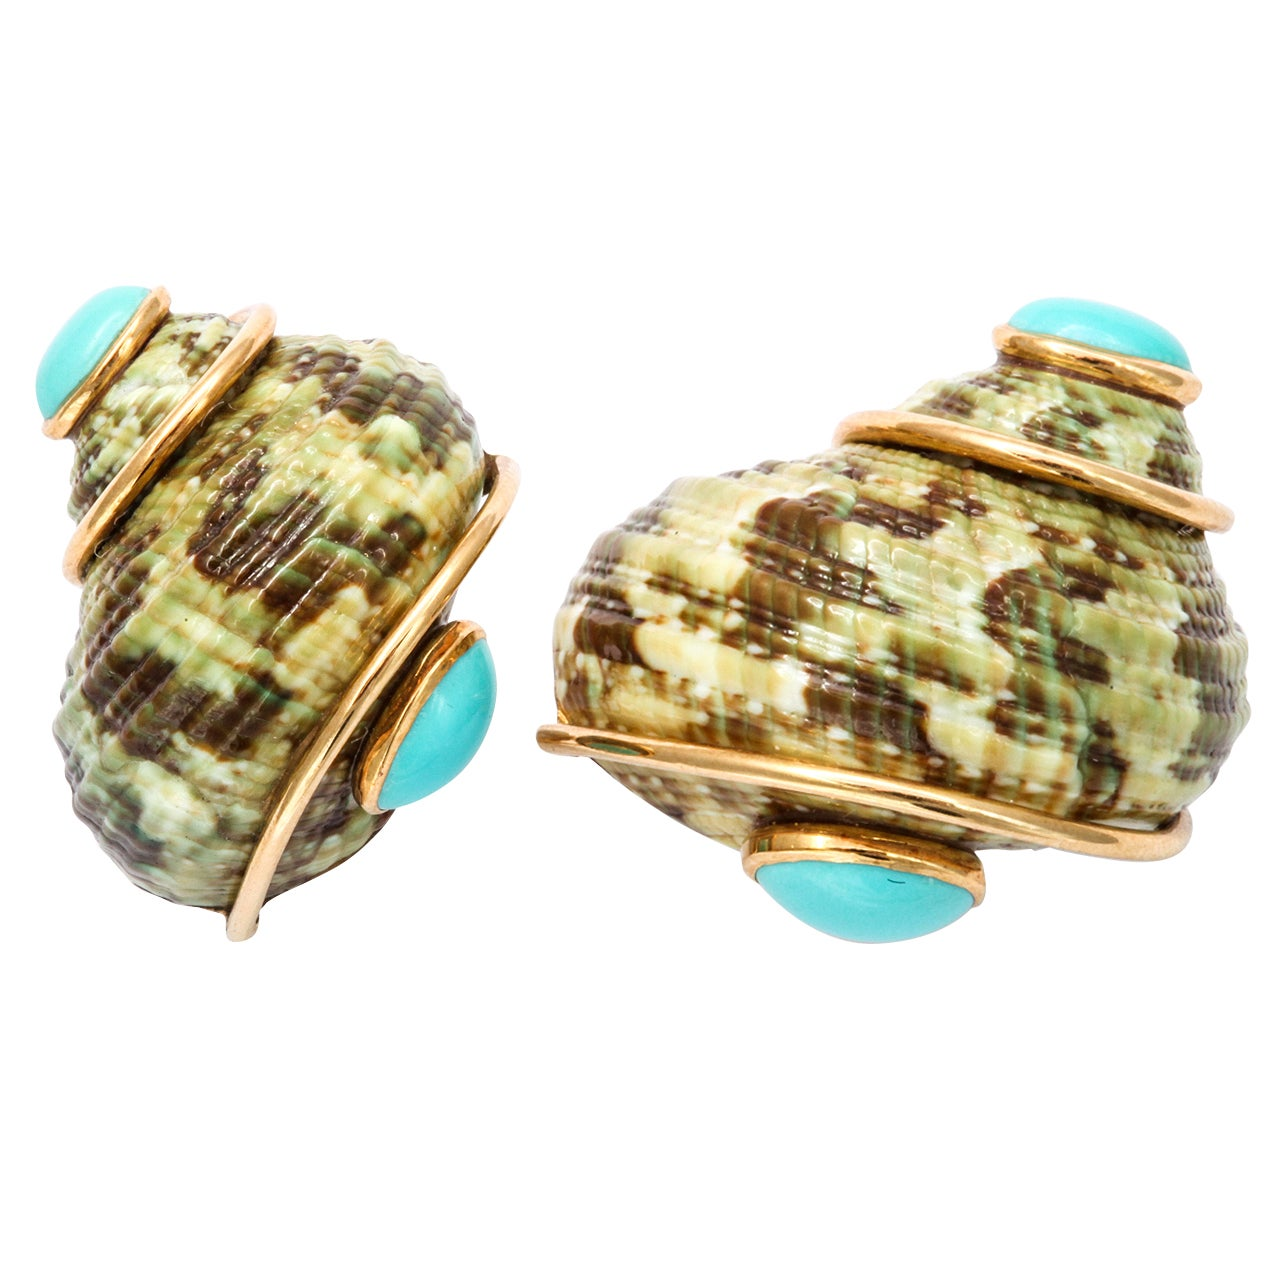 turquoise shell earrings by seaman schepps at 1stdibs